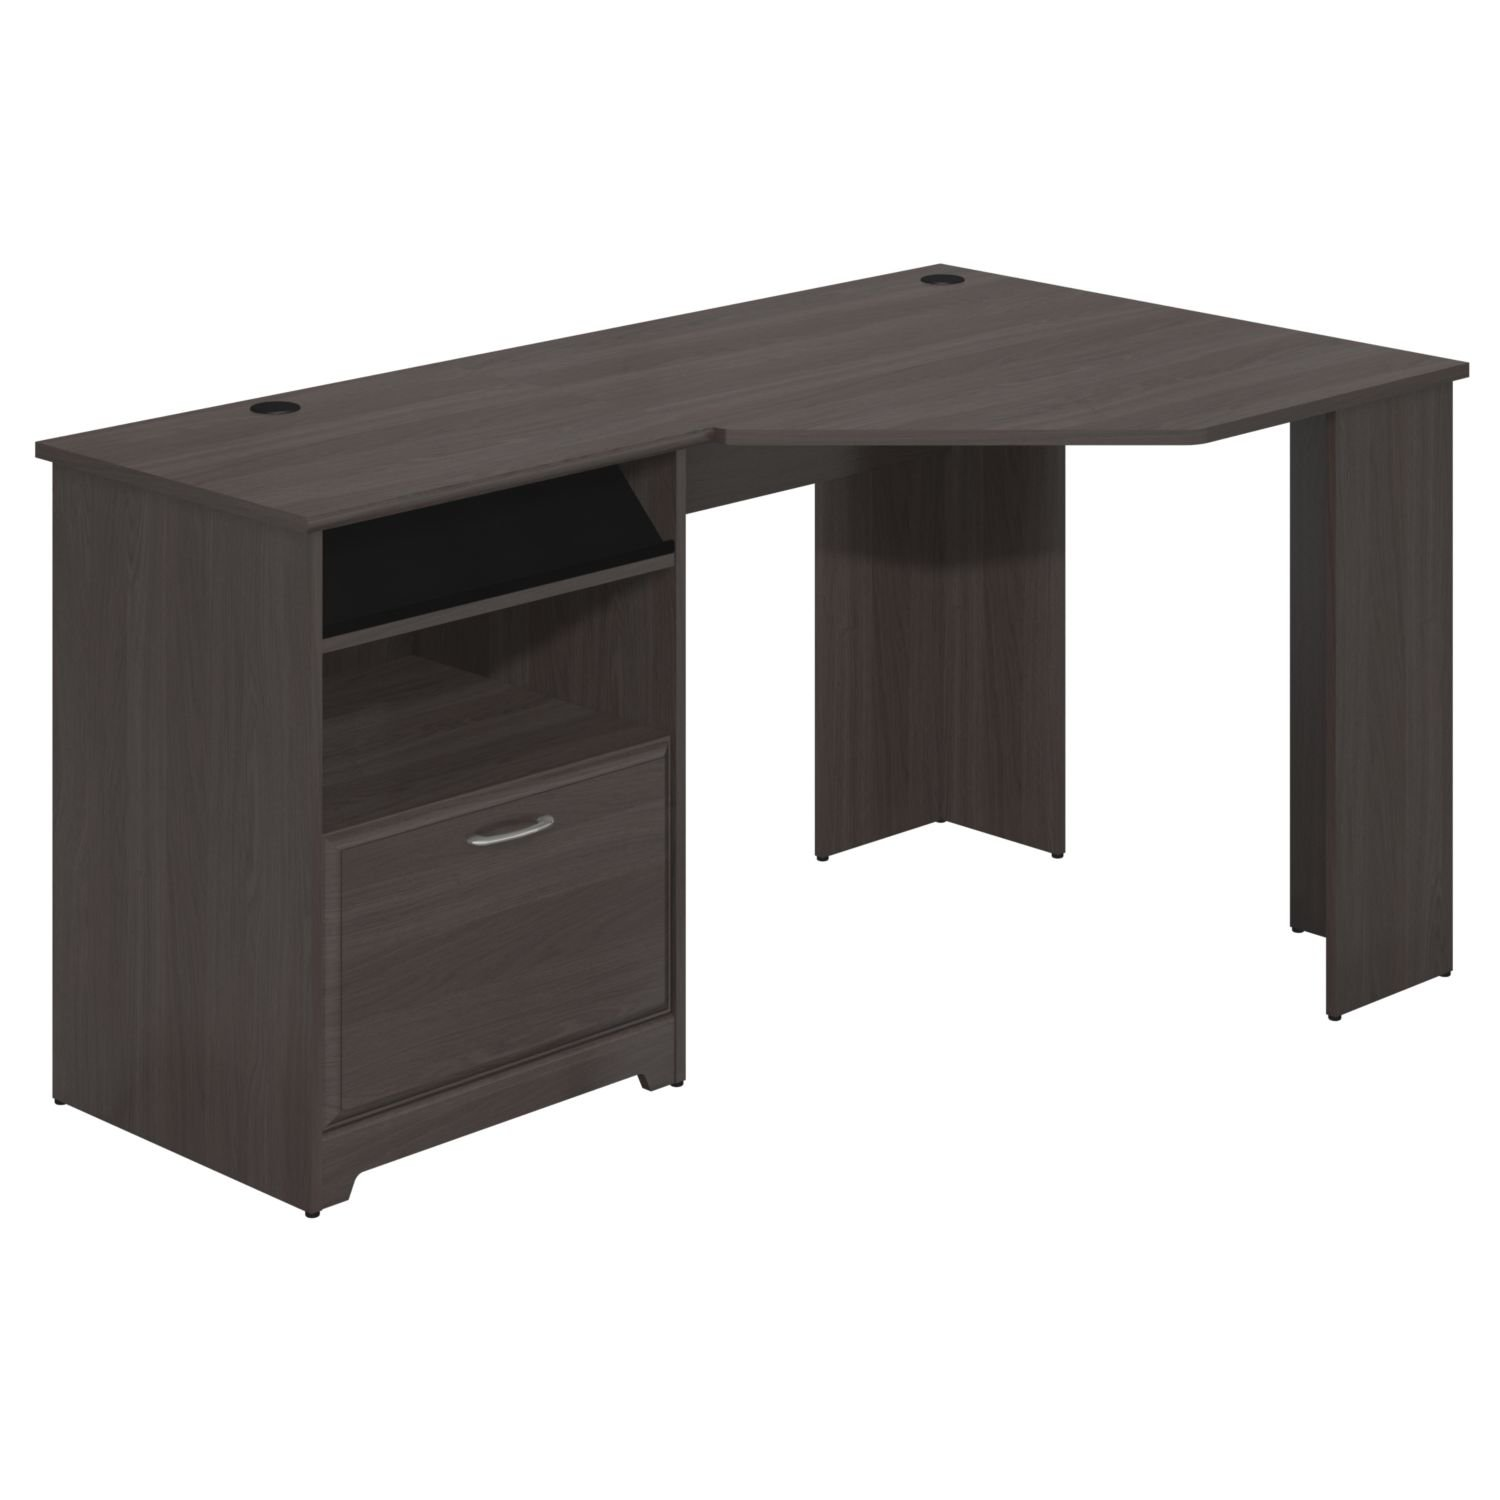 amazoncom bush furniture cabot collection corner desk in heather gray kitchen dining bush home office furniture